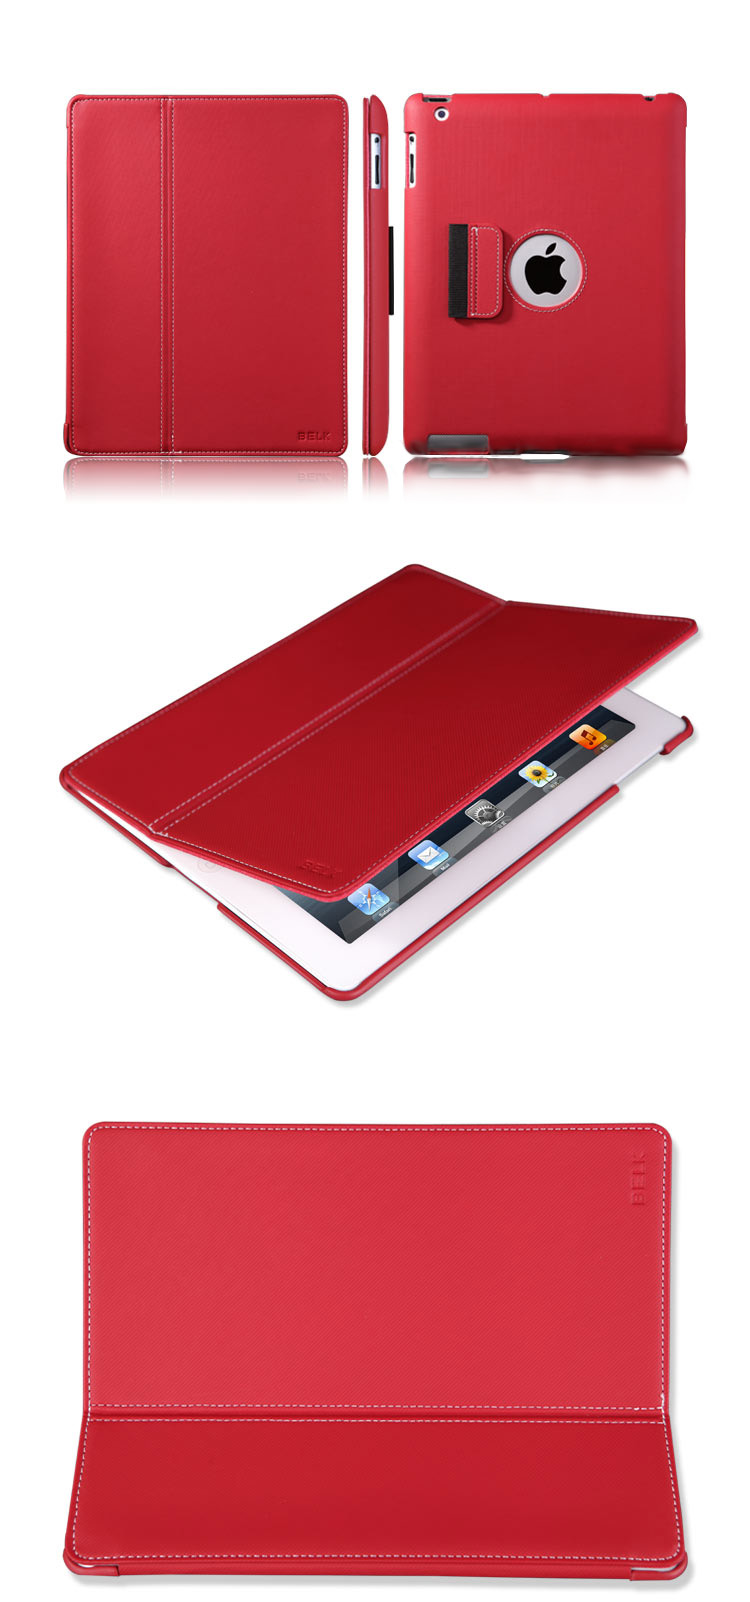 Belk iPad 2 / The new iPad (iPad 3)  Sleeve Bags Cases - Textile Pattern, Trendy and Fashionable Design, Fne Fluff  Inner Layer,  Auto sleep/Awake